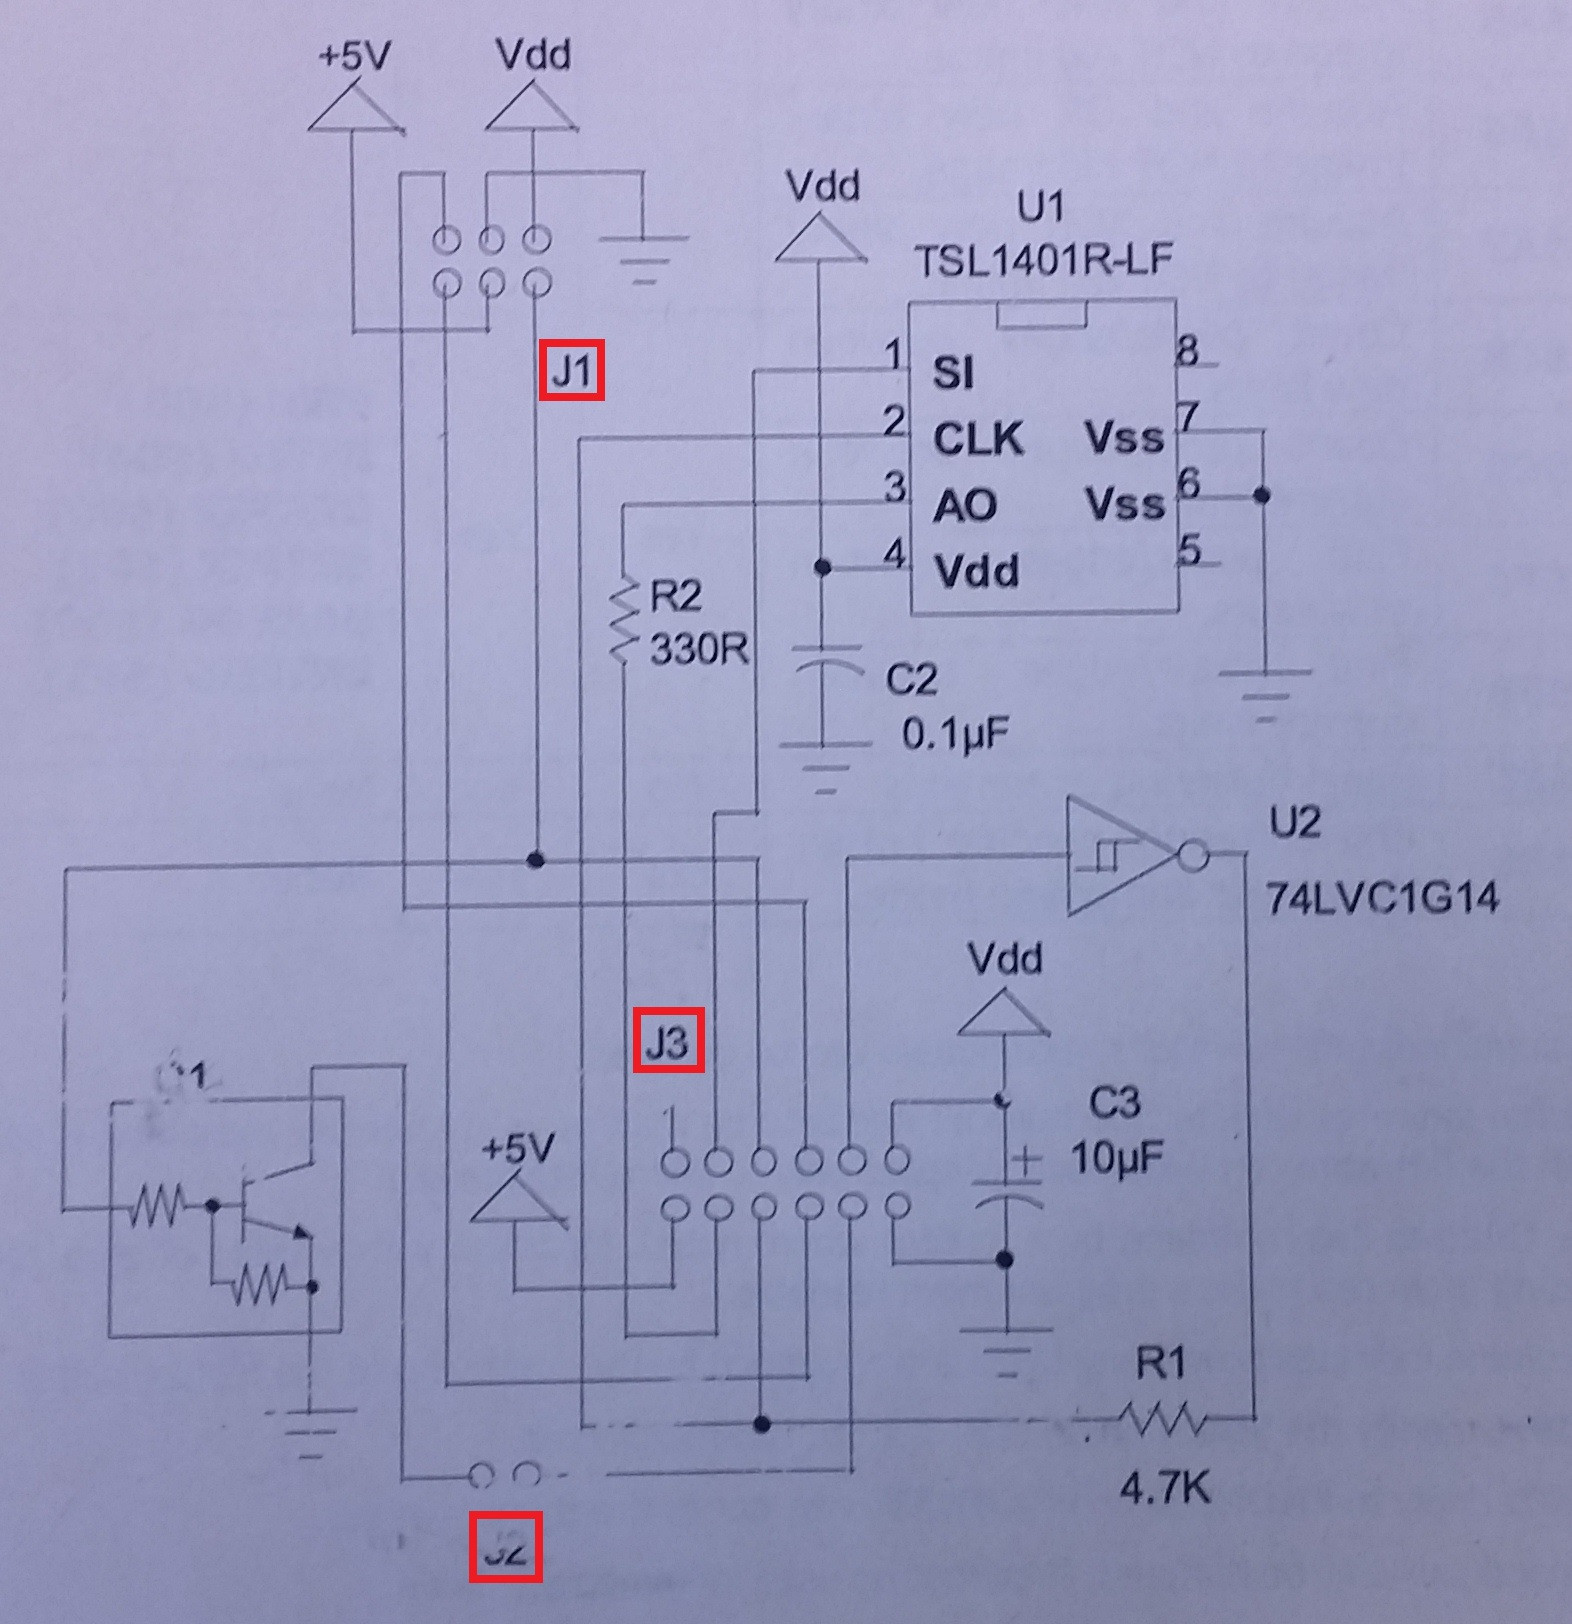 hight resolution of what does j1 j2 and j3 represent on a schematic electrical wiring a 400 amp service j1 wiring diagram